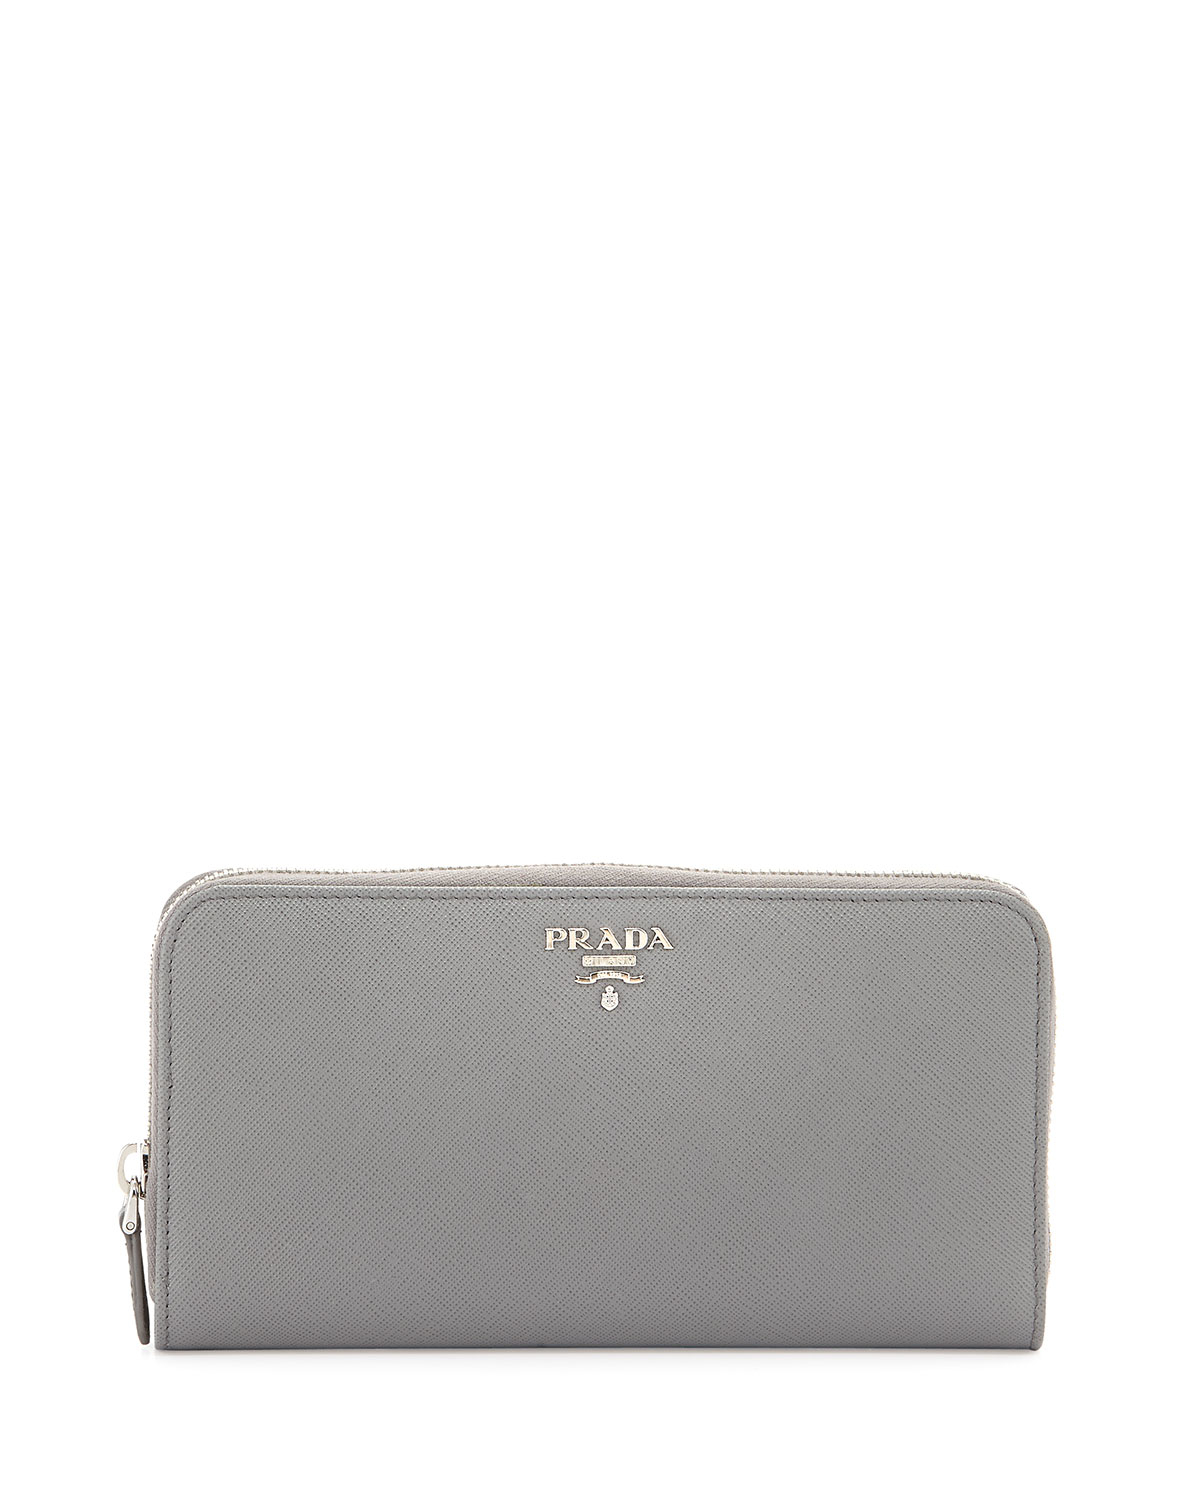 035df3de25c4 ... spain lyst prada saffiano zip around continental wallet ce73a f2bd0